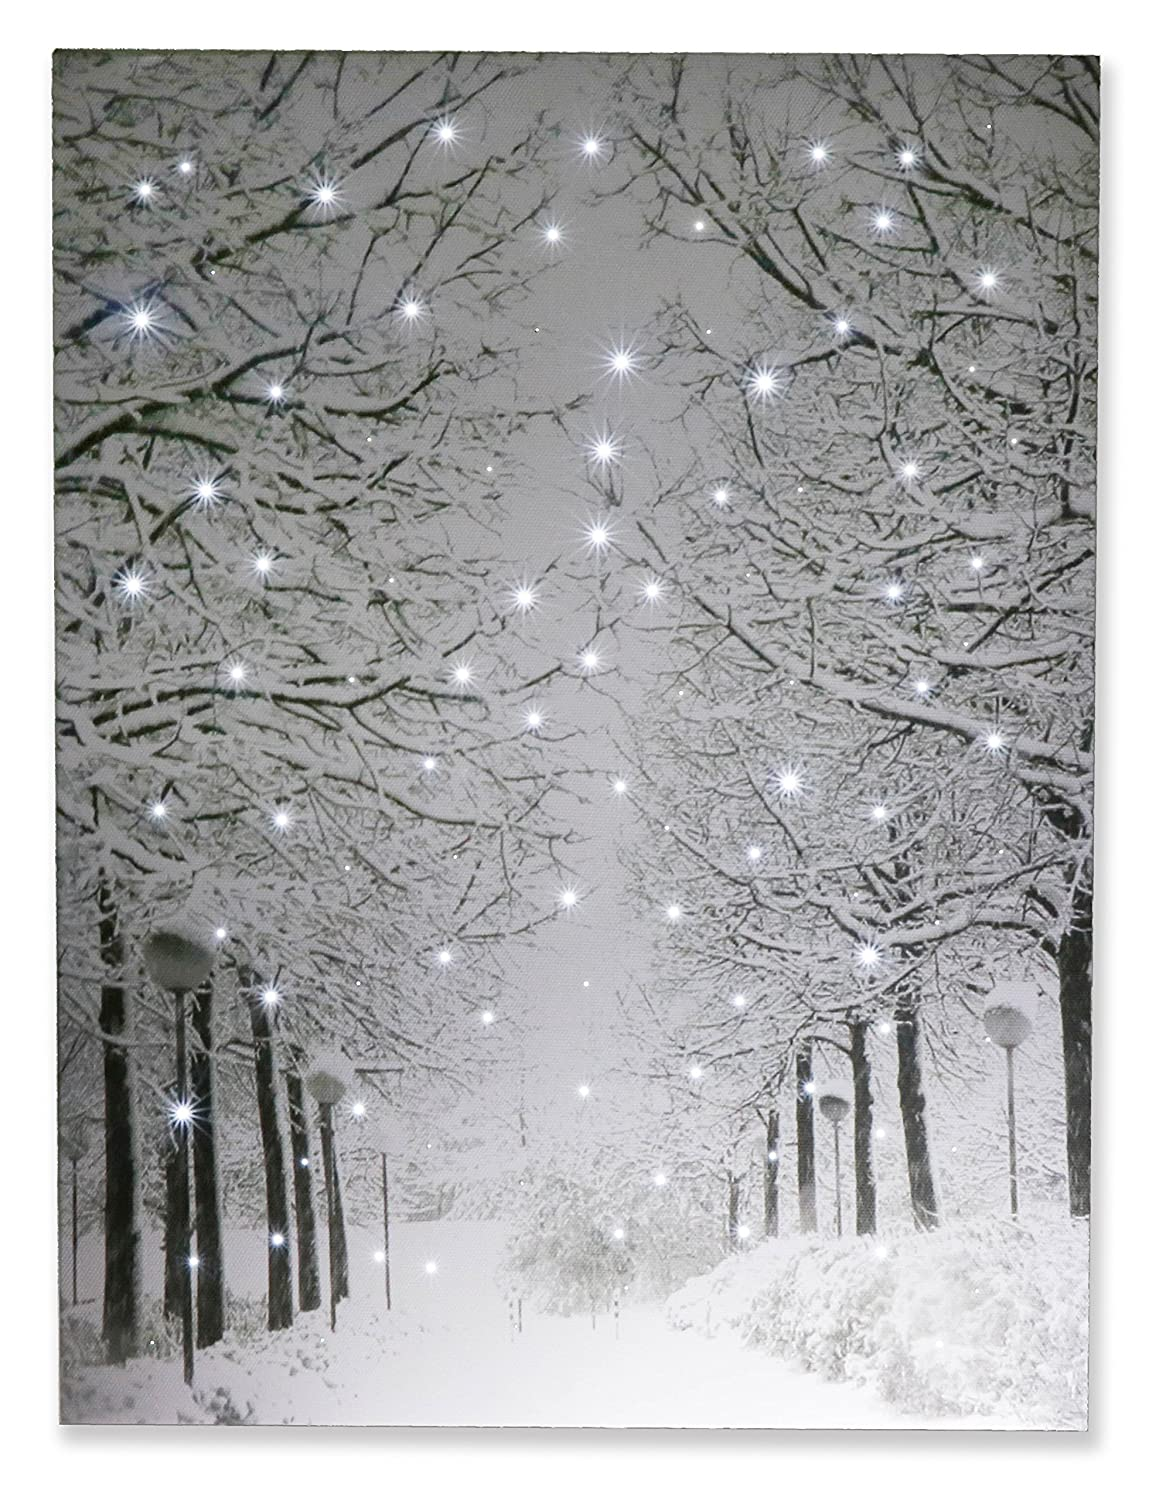 Clever Creations Snowy Winter Path Light Up Poster Sparkling Canvas Wall Art with Bright LED Lighting | 15.75 x 11.75 Perfect Size for Home, Living Room, Office or Classroom | Battery Powered